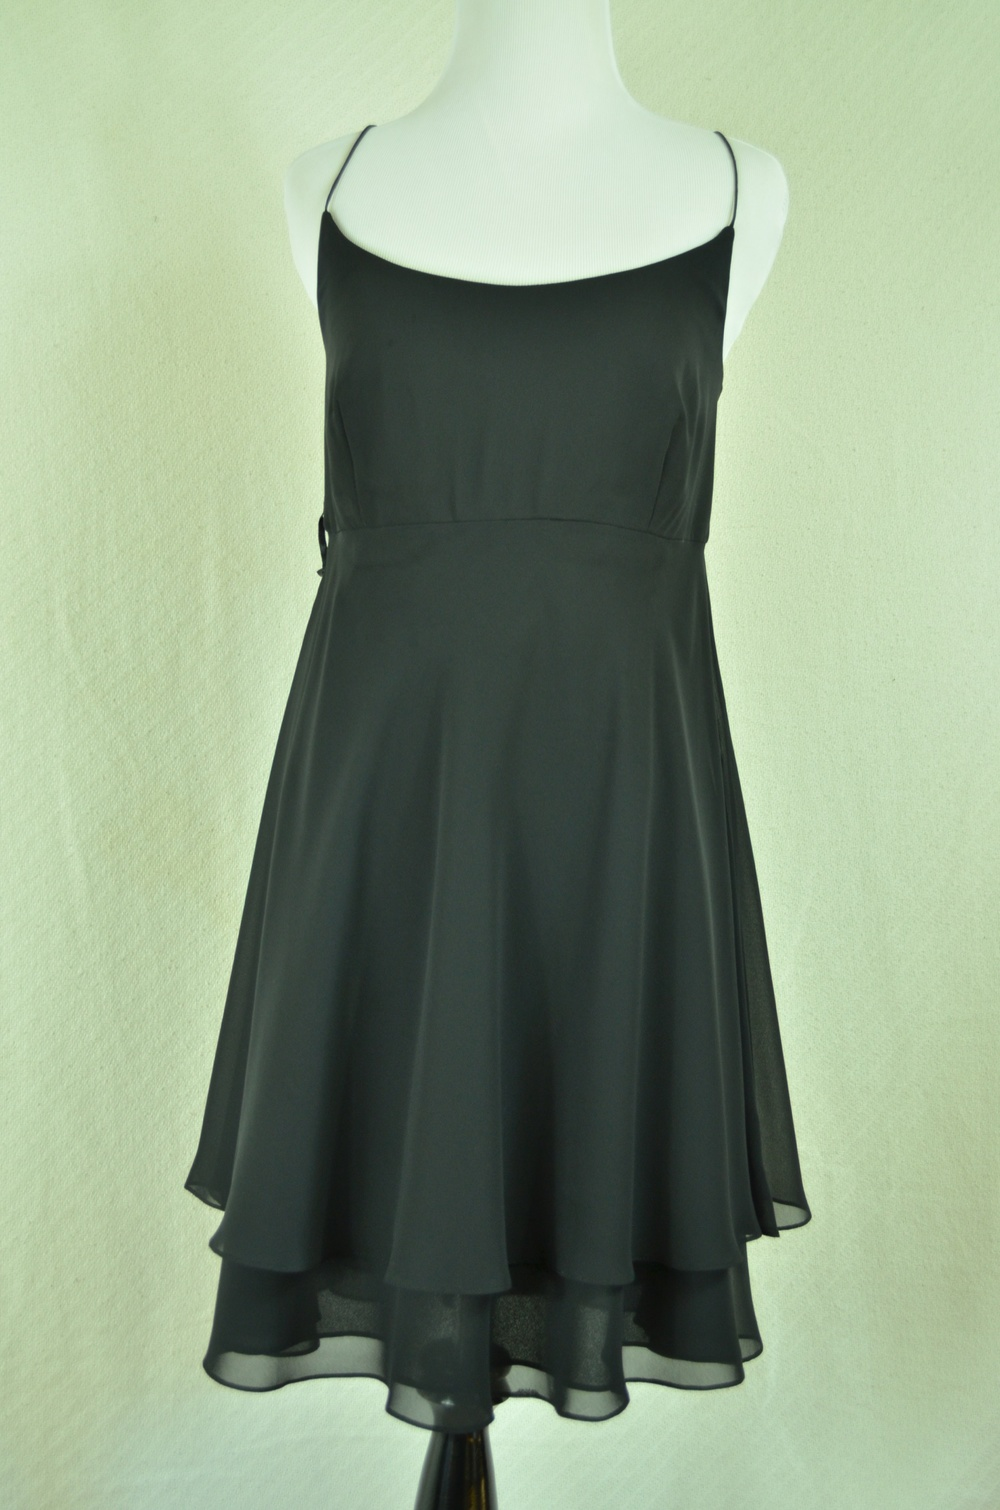 33. Empire Waist Chiffon LBD - no label